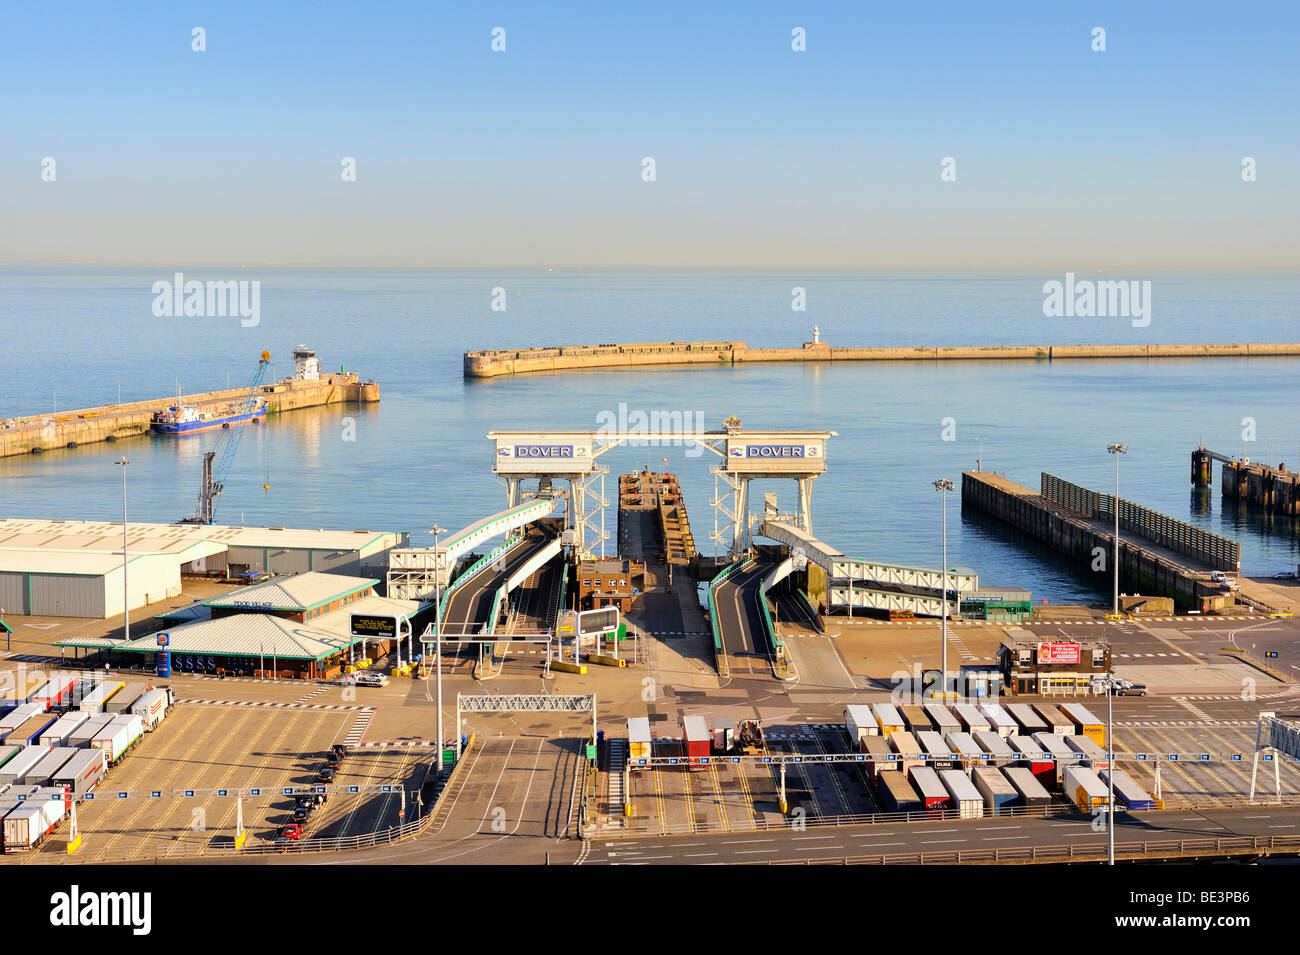 View of the Eastern Docks at the ferry port of Dover, Kent, England, UK, Europe - Stock Image